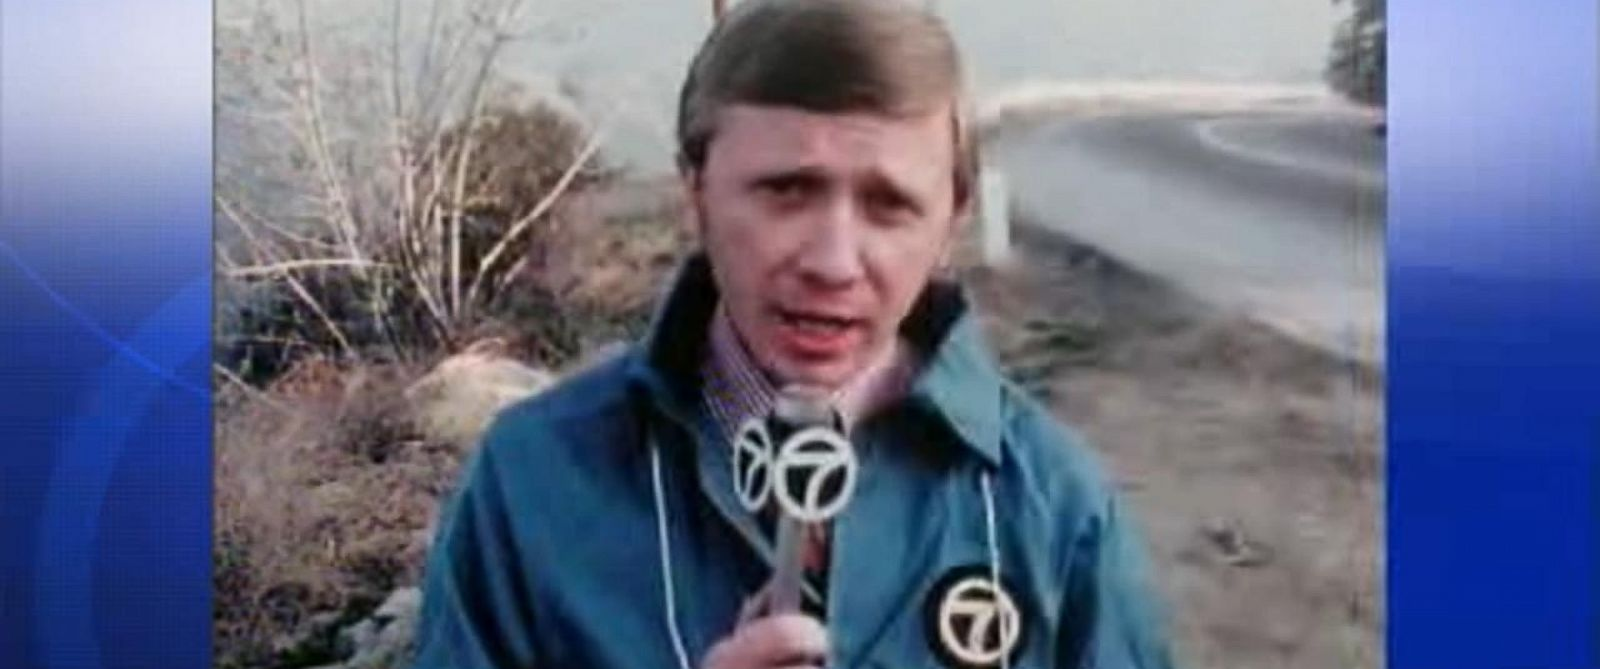 PHOTO: KABC News reporter Al Wiman reports from the site where a TV news crew found clothing introduced as evidence at trial for the Sharon Tate murders.